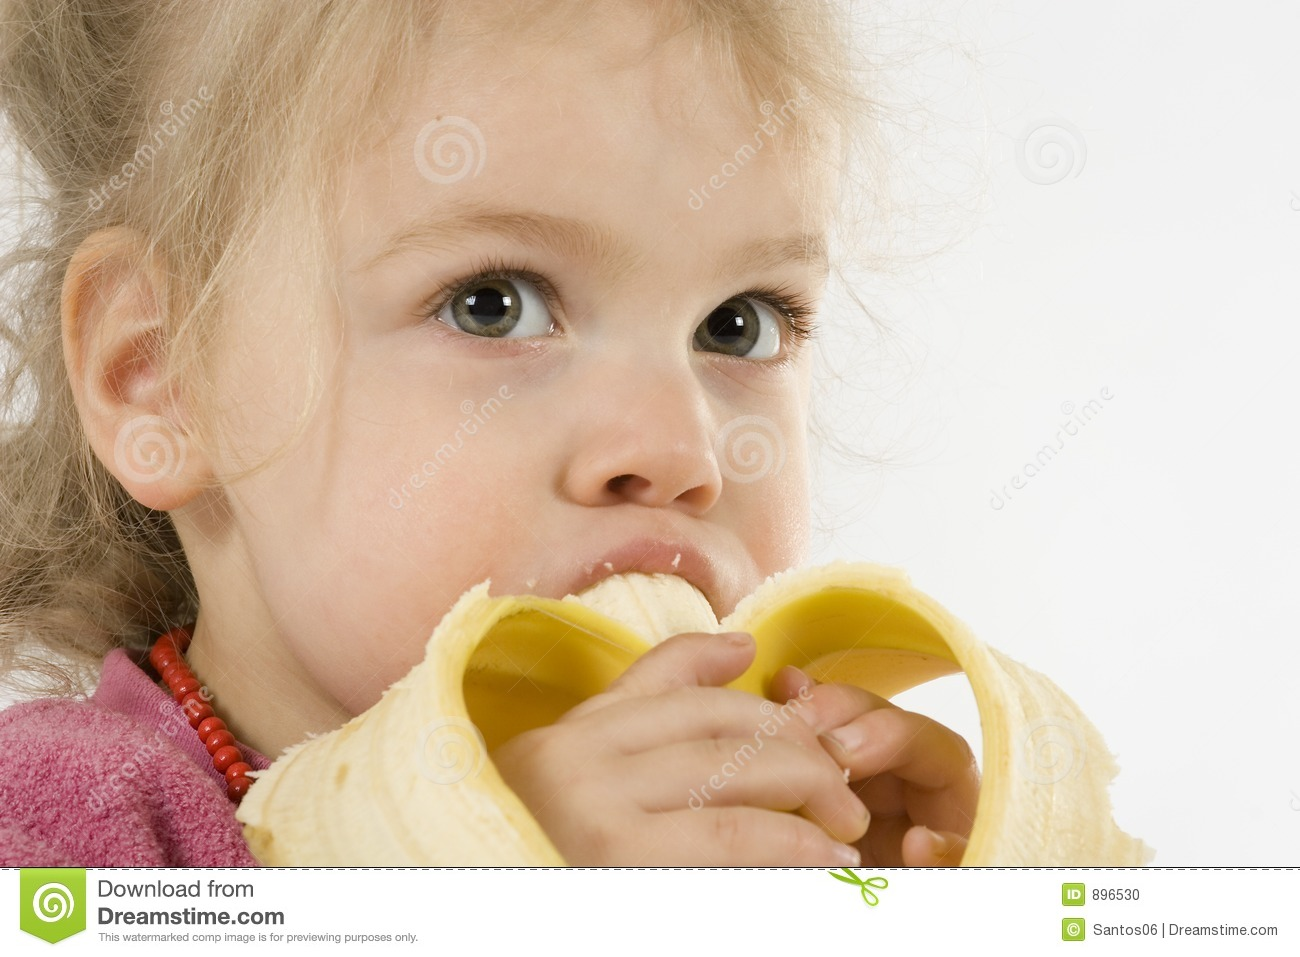 Eating Banana Stock Photo - Image: 896530